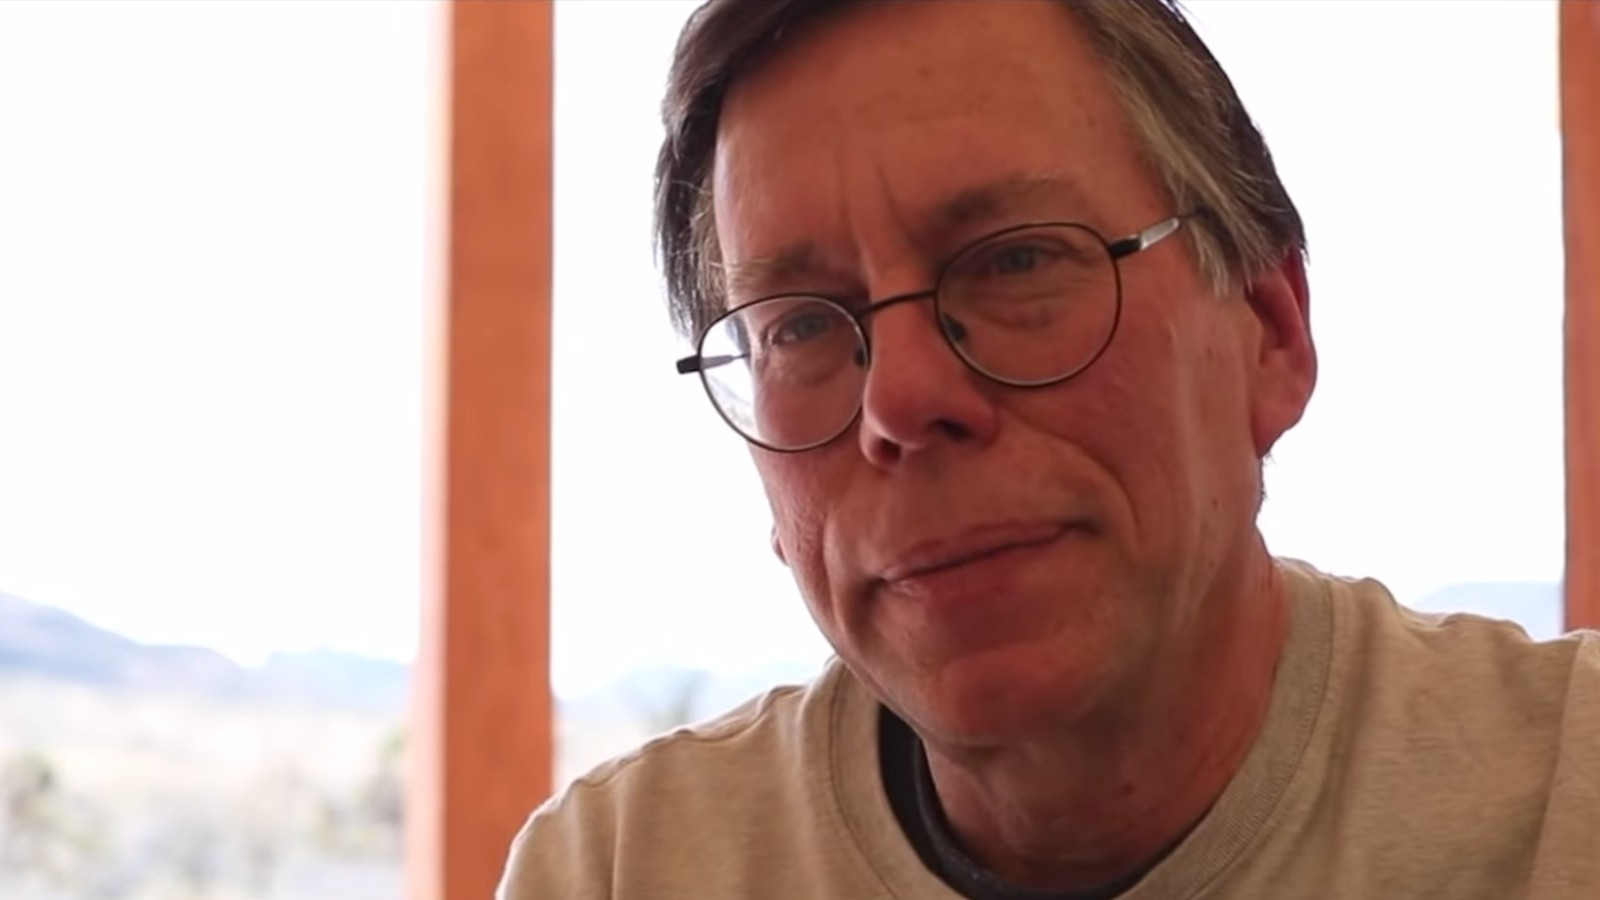 Bob Lazar Says the FBI Raided Him to Seize Area 51's Alien Fuel. The Truth Is Weirder